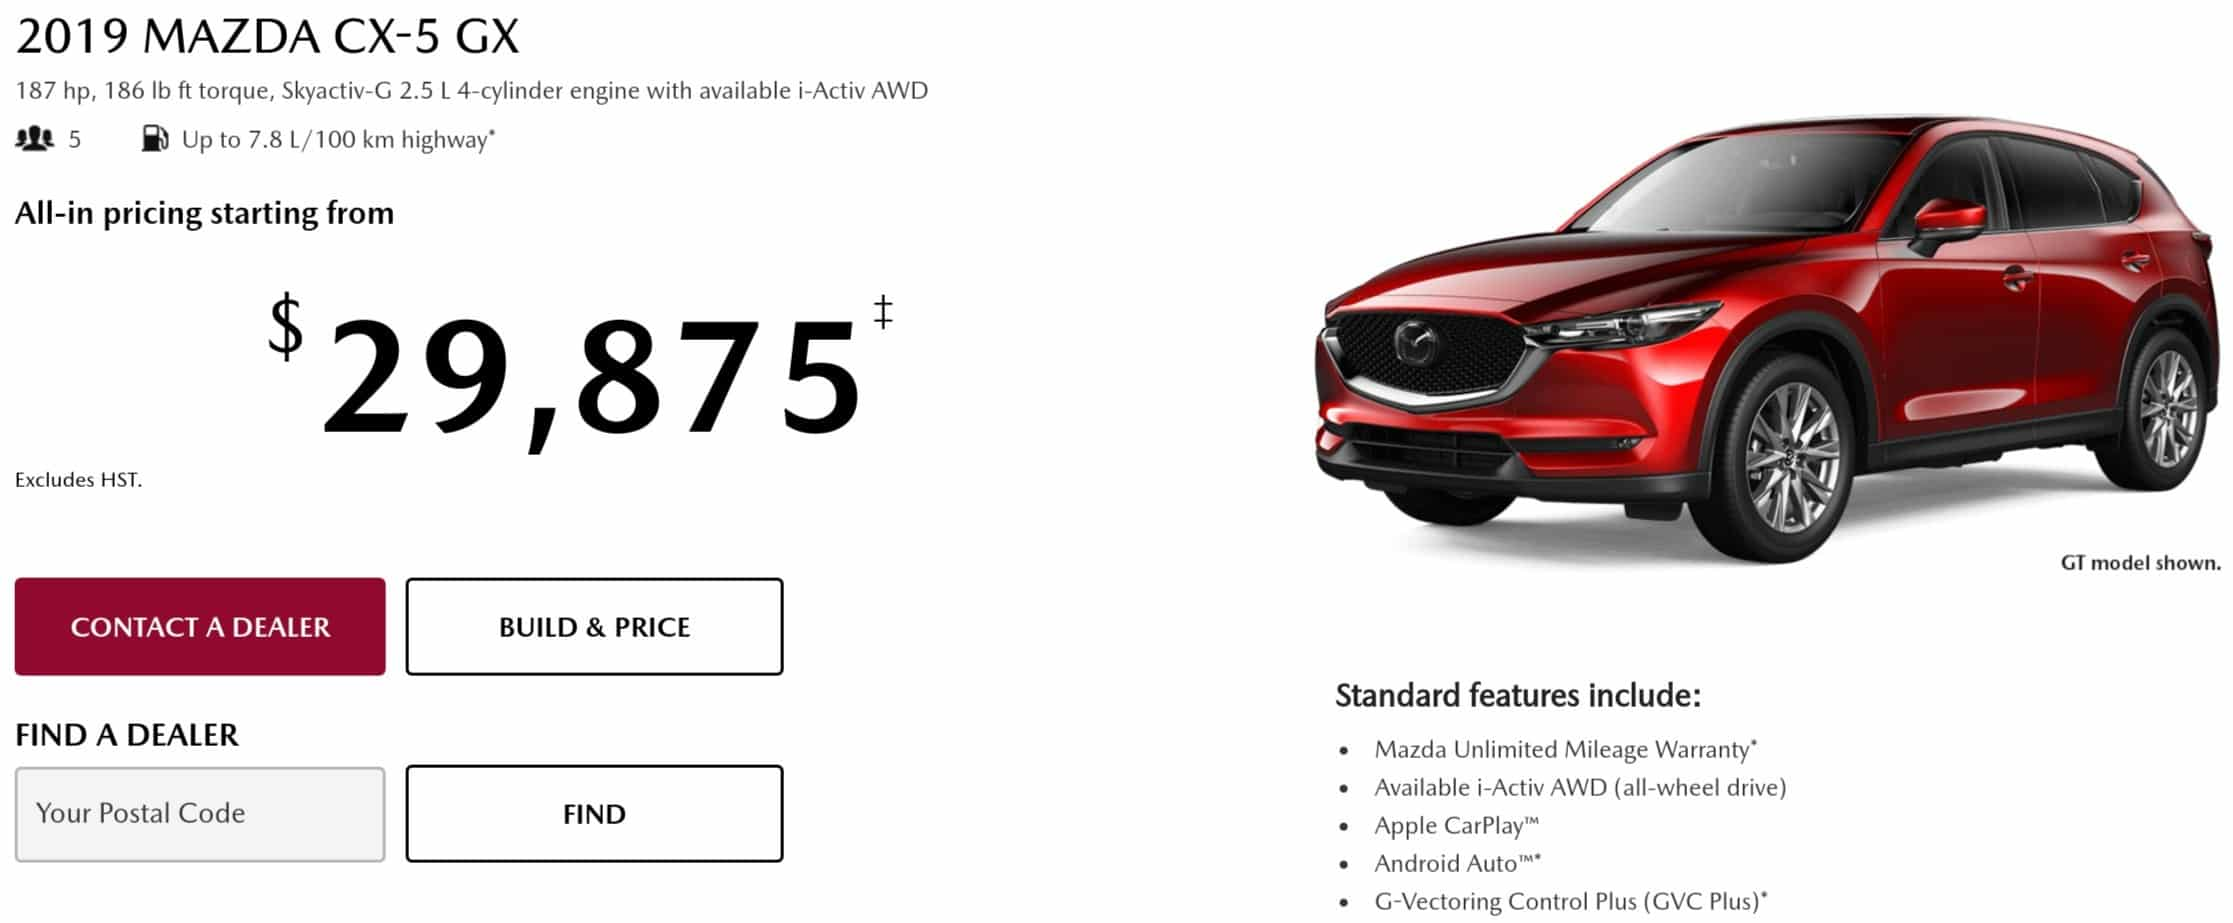 2019 Mazda CX 5 is one of the best new car deals in Canada